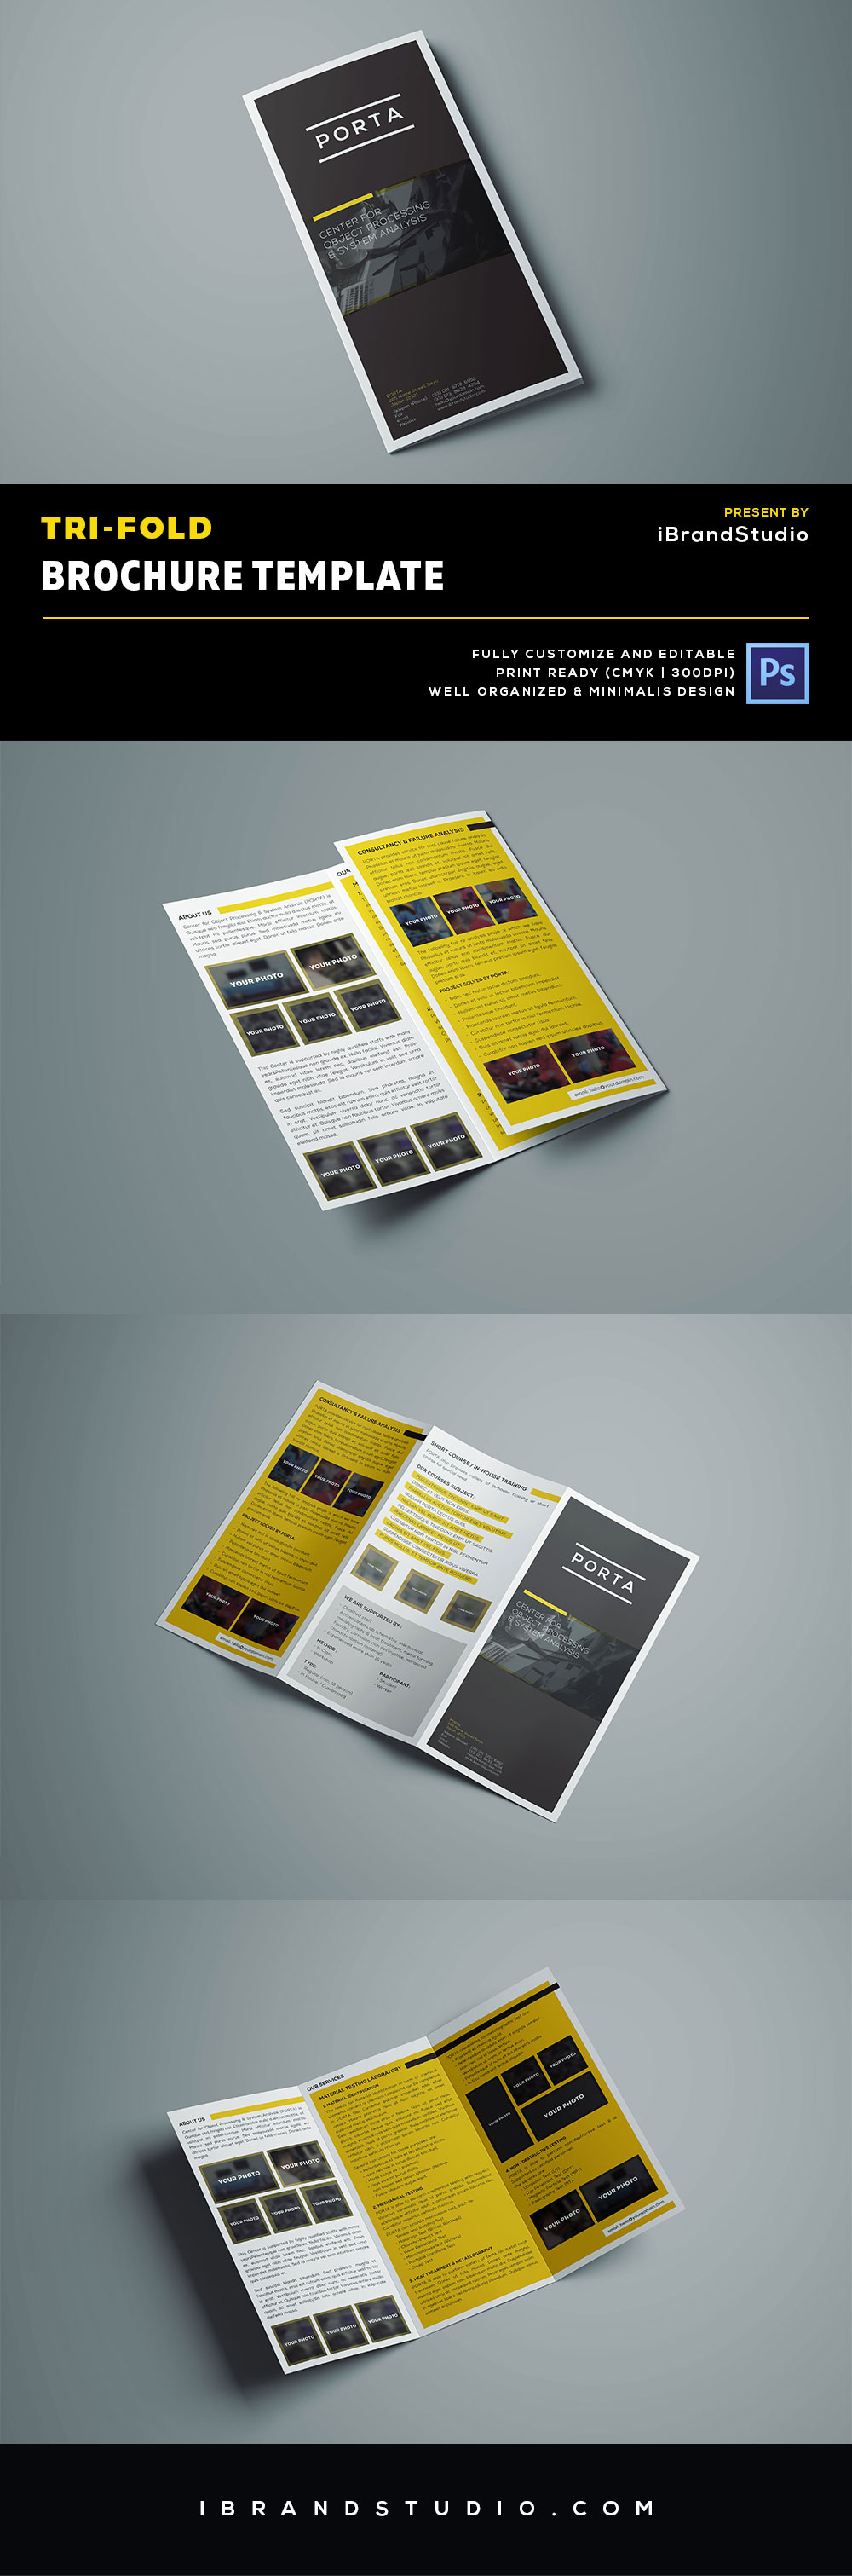 Free tri fold brochure template psd ideal for event or for Tri fold brochure templates